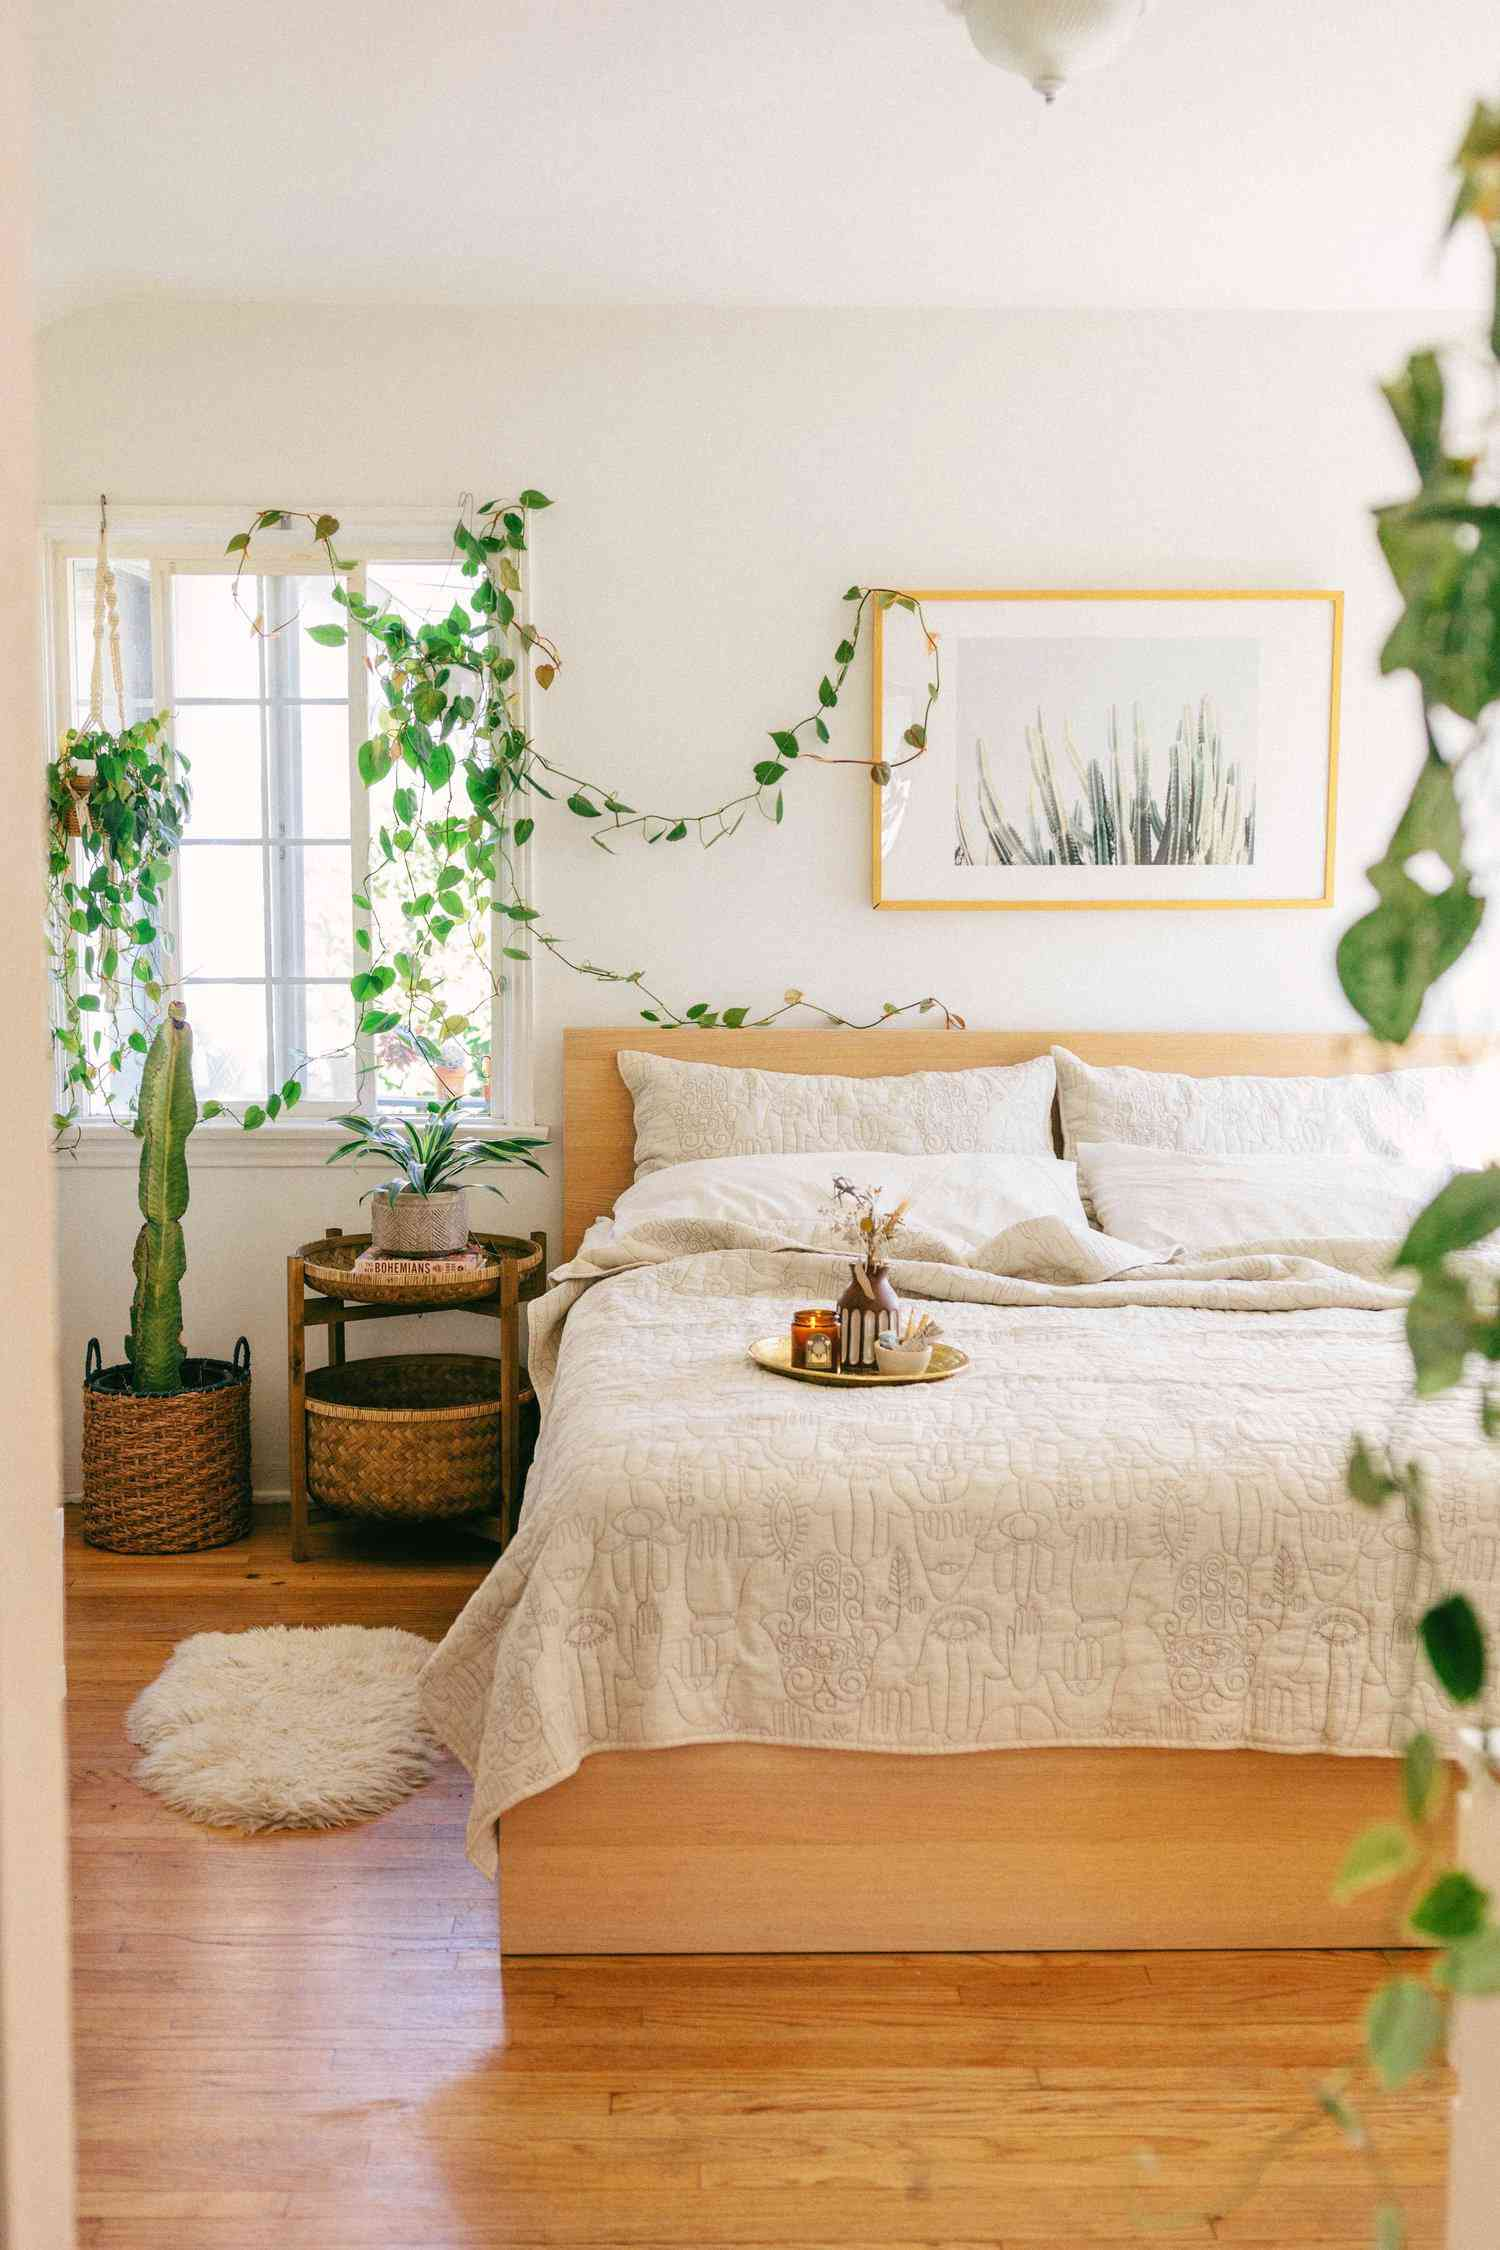 Pothos in a light and airy bedroom